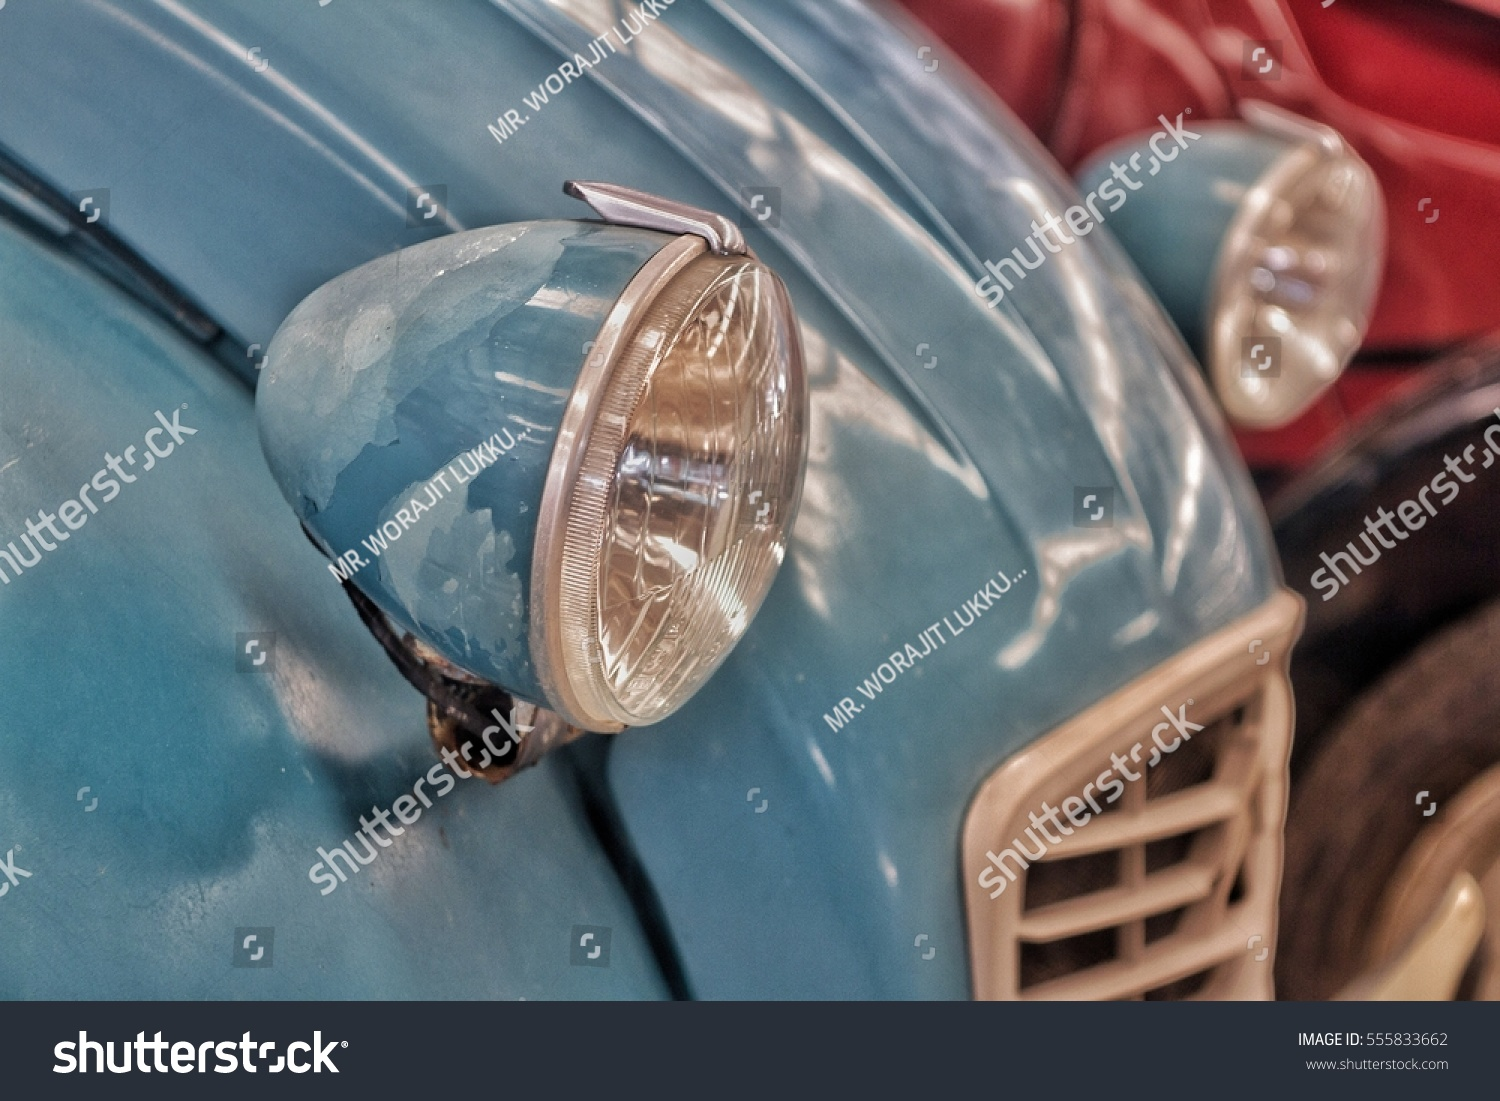 Vintage Car Parts Stock Photo 555833662 - Shutterstock